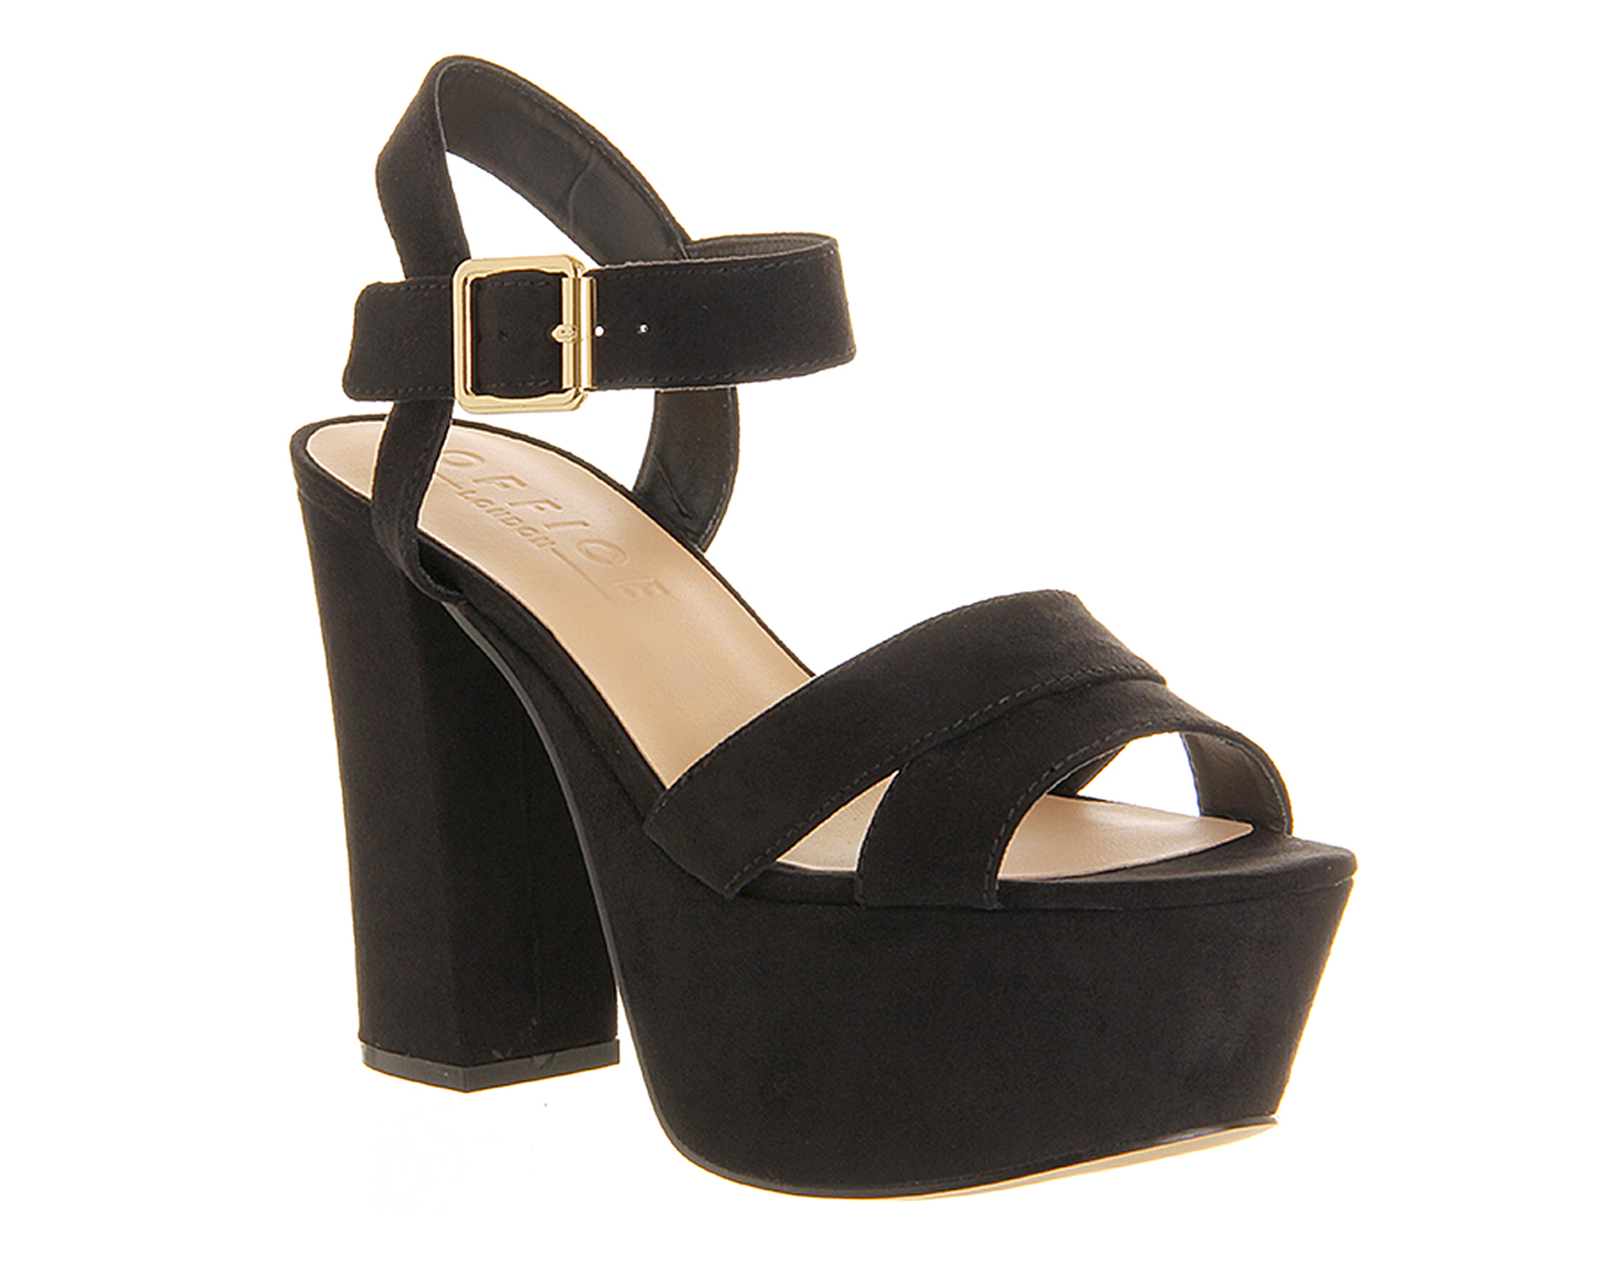 Womens Office Jargon Platform Sandal BLACK Heels | eBay